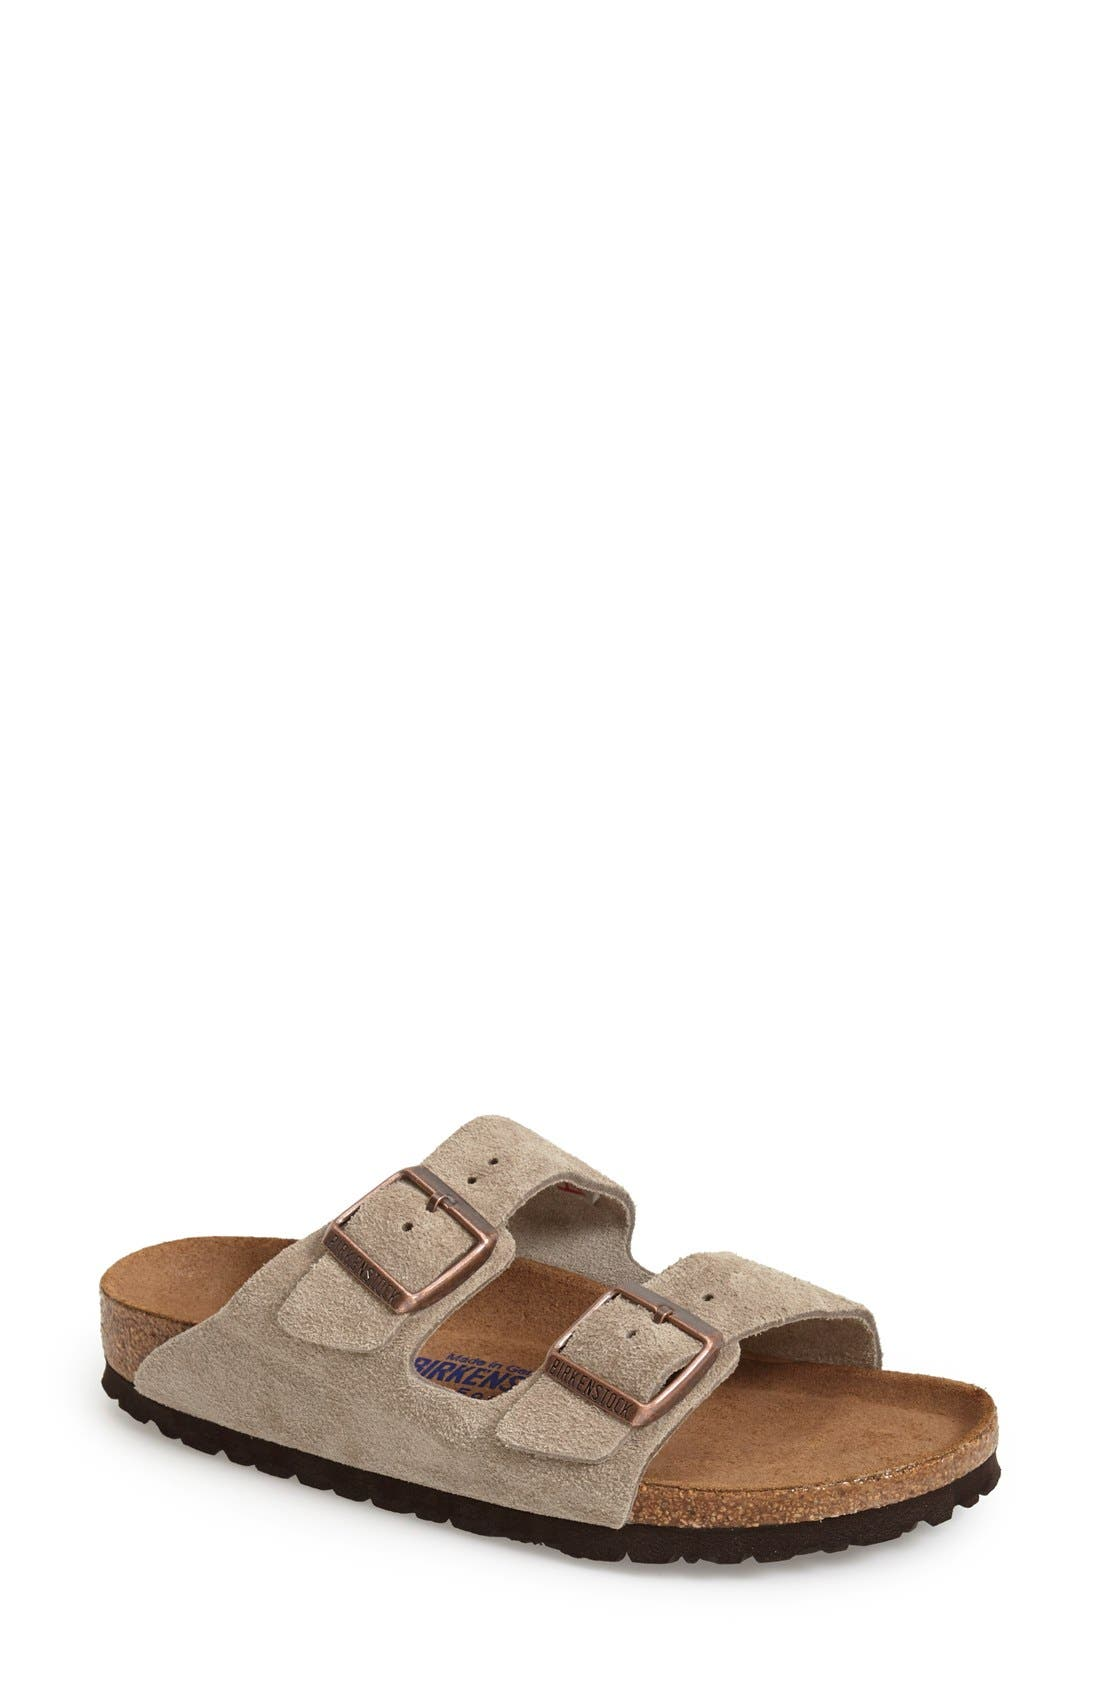 Main Image - Birkenstock 'Arizona' Soft Footbed Suede Sandal (Women)